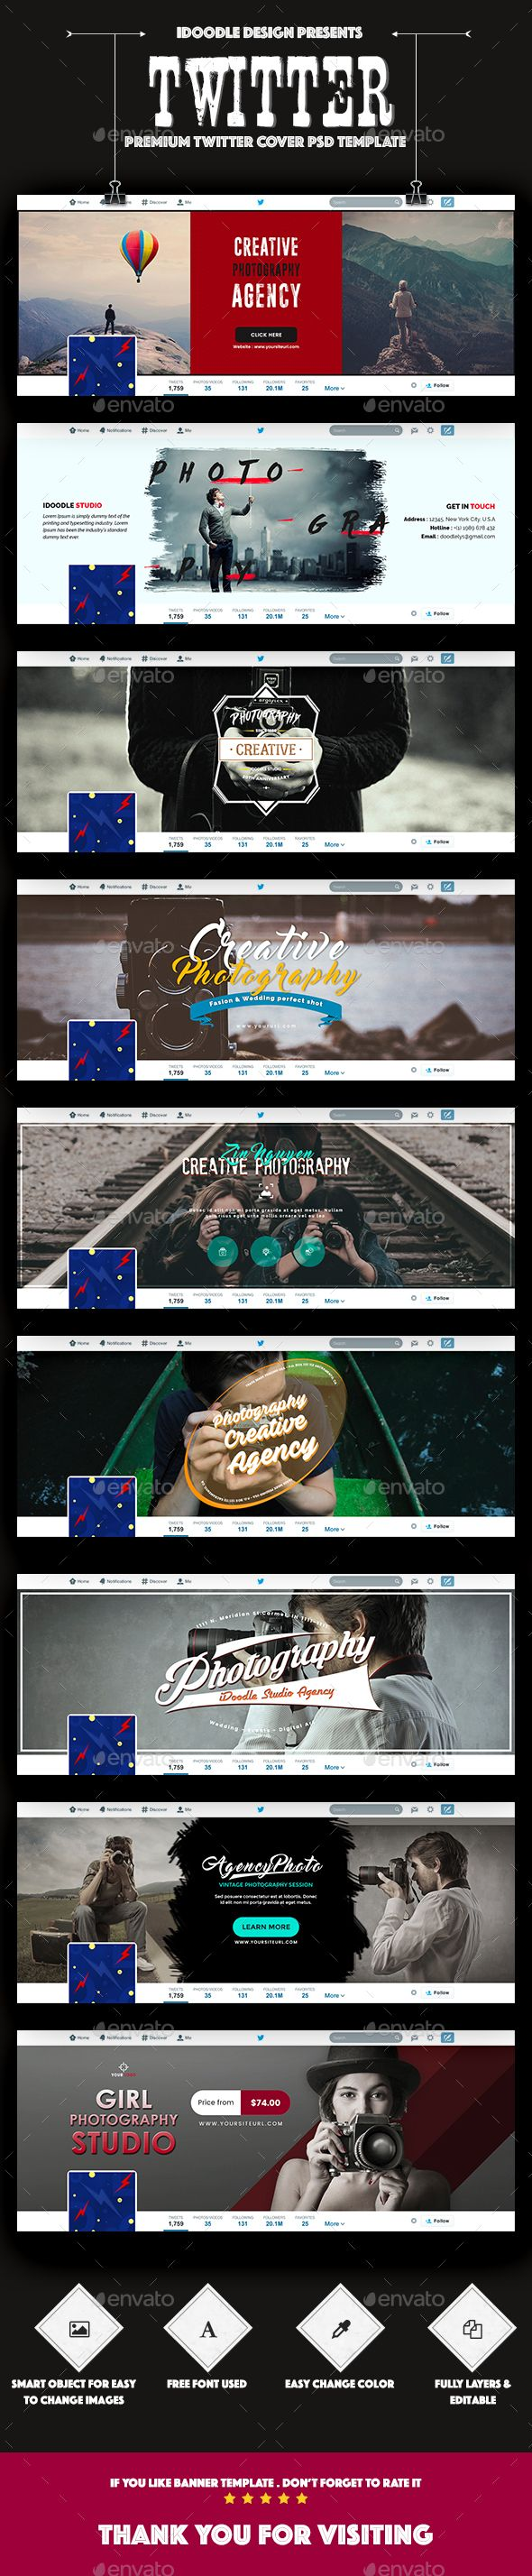 Photography Twitter Headers - 09 PSD | Header, Psd templates and ...